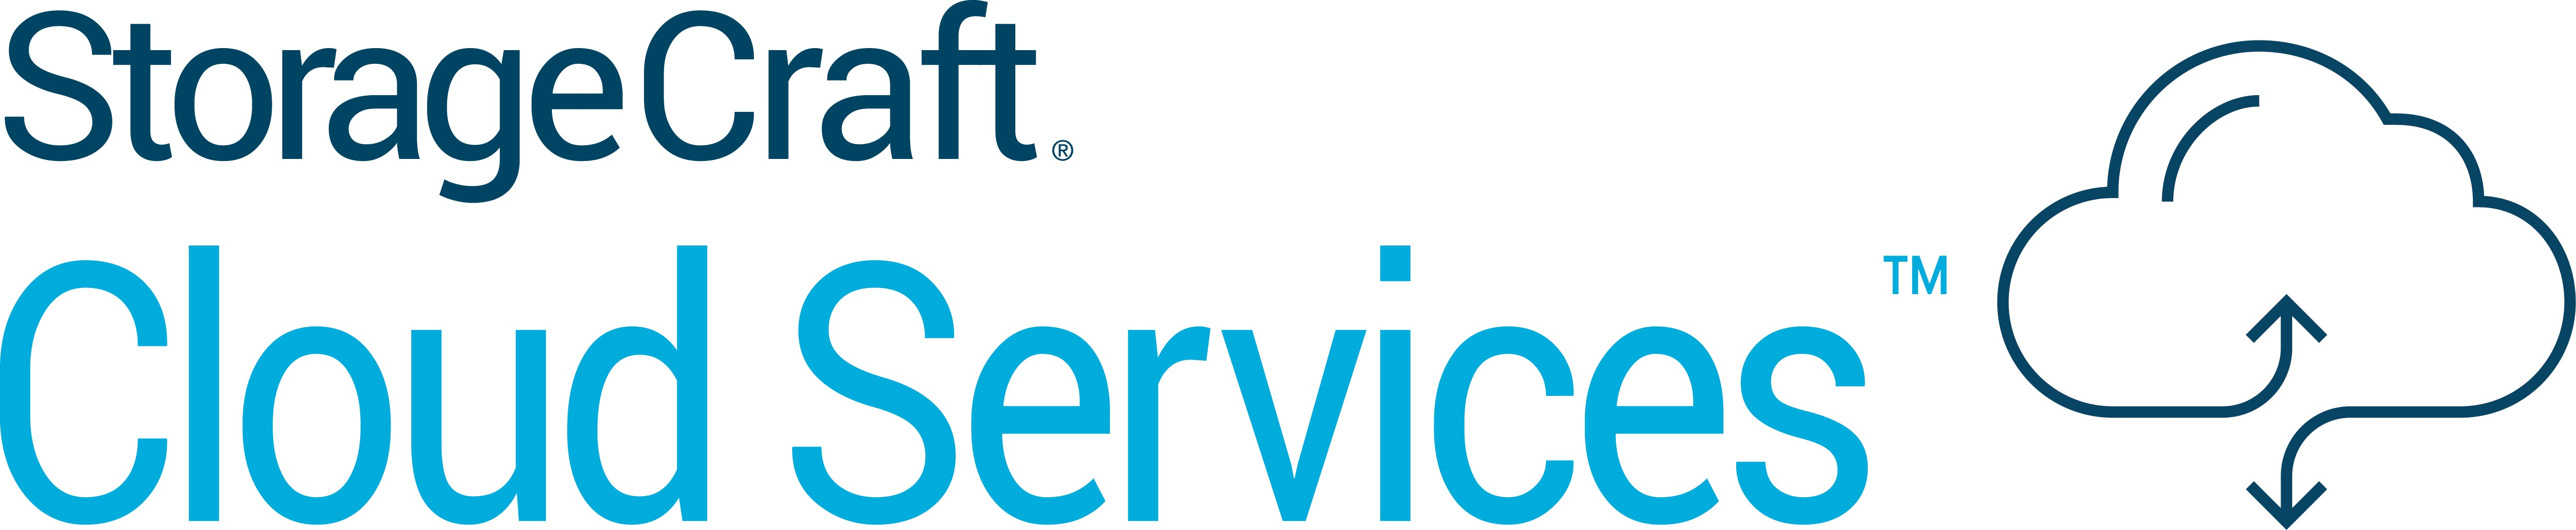 SC_Cloud_Services_Logo